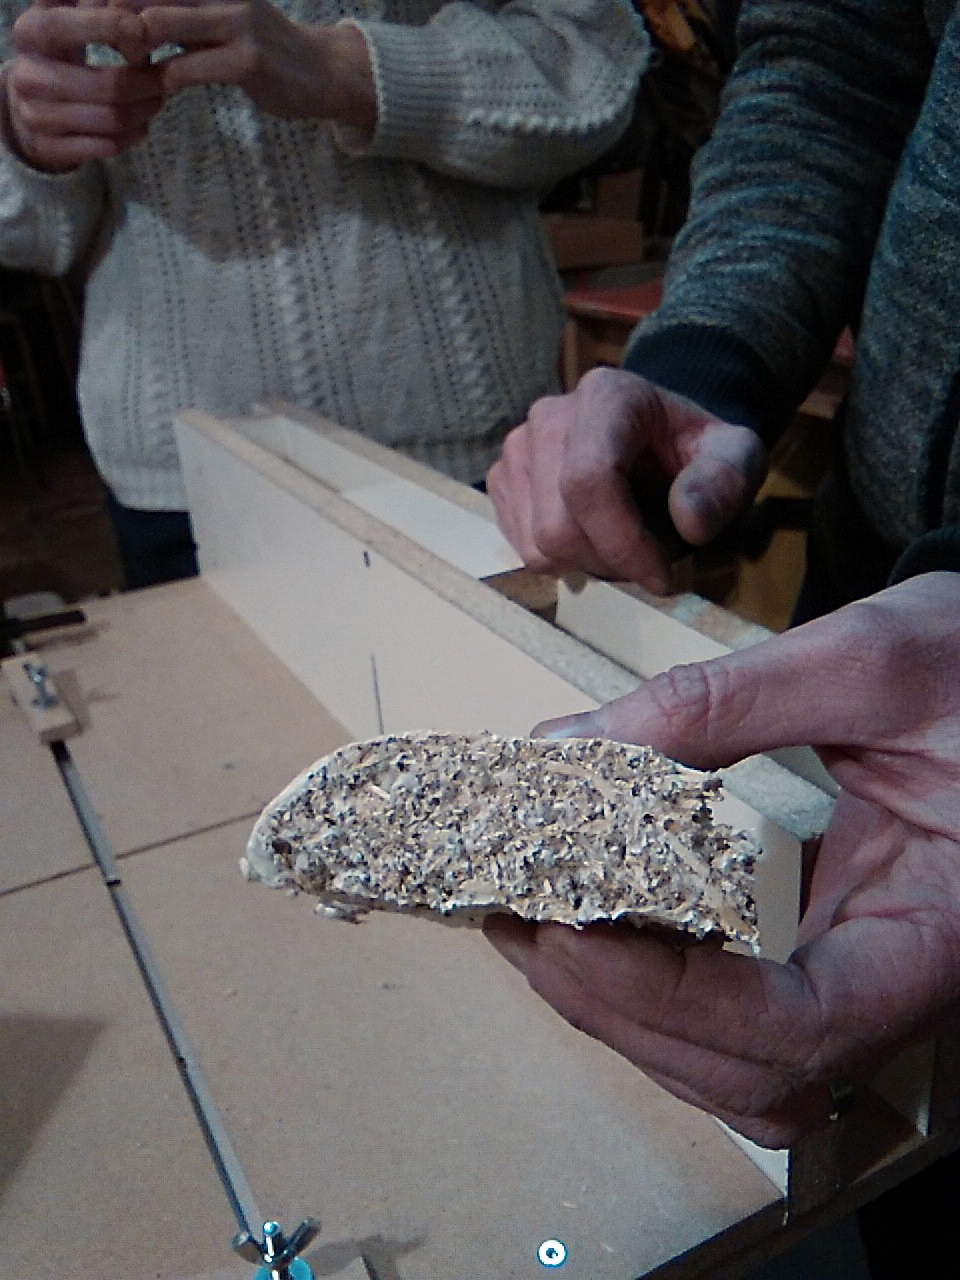 The mycelium brick cut in two pieces, here is how it looks inside